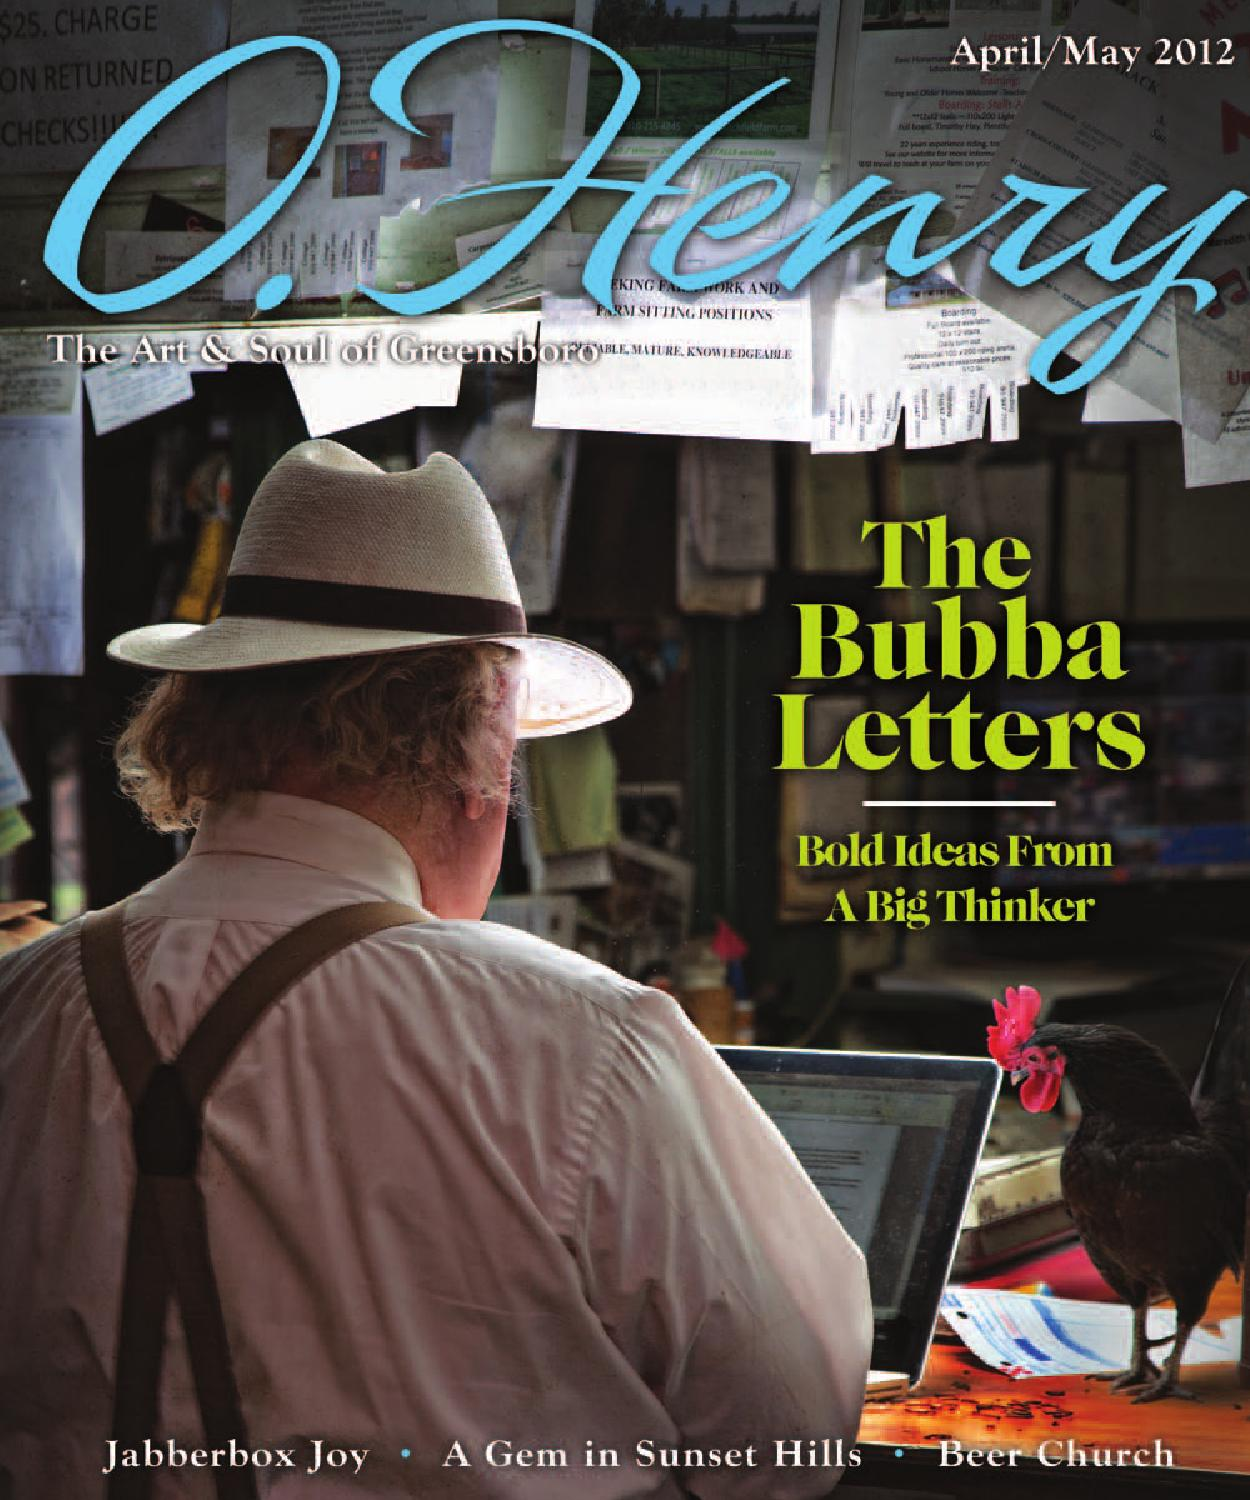 d0a1c67c0f1 April May 2012 O.Henry by O.Henry magazine - issuu